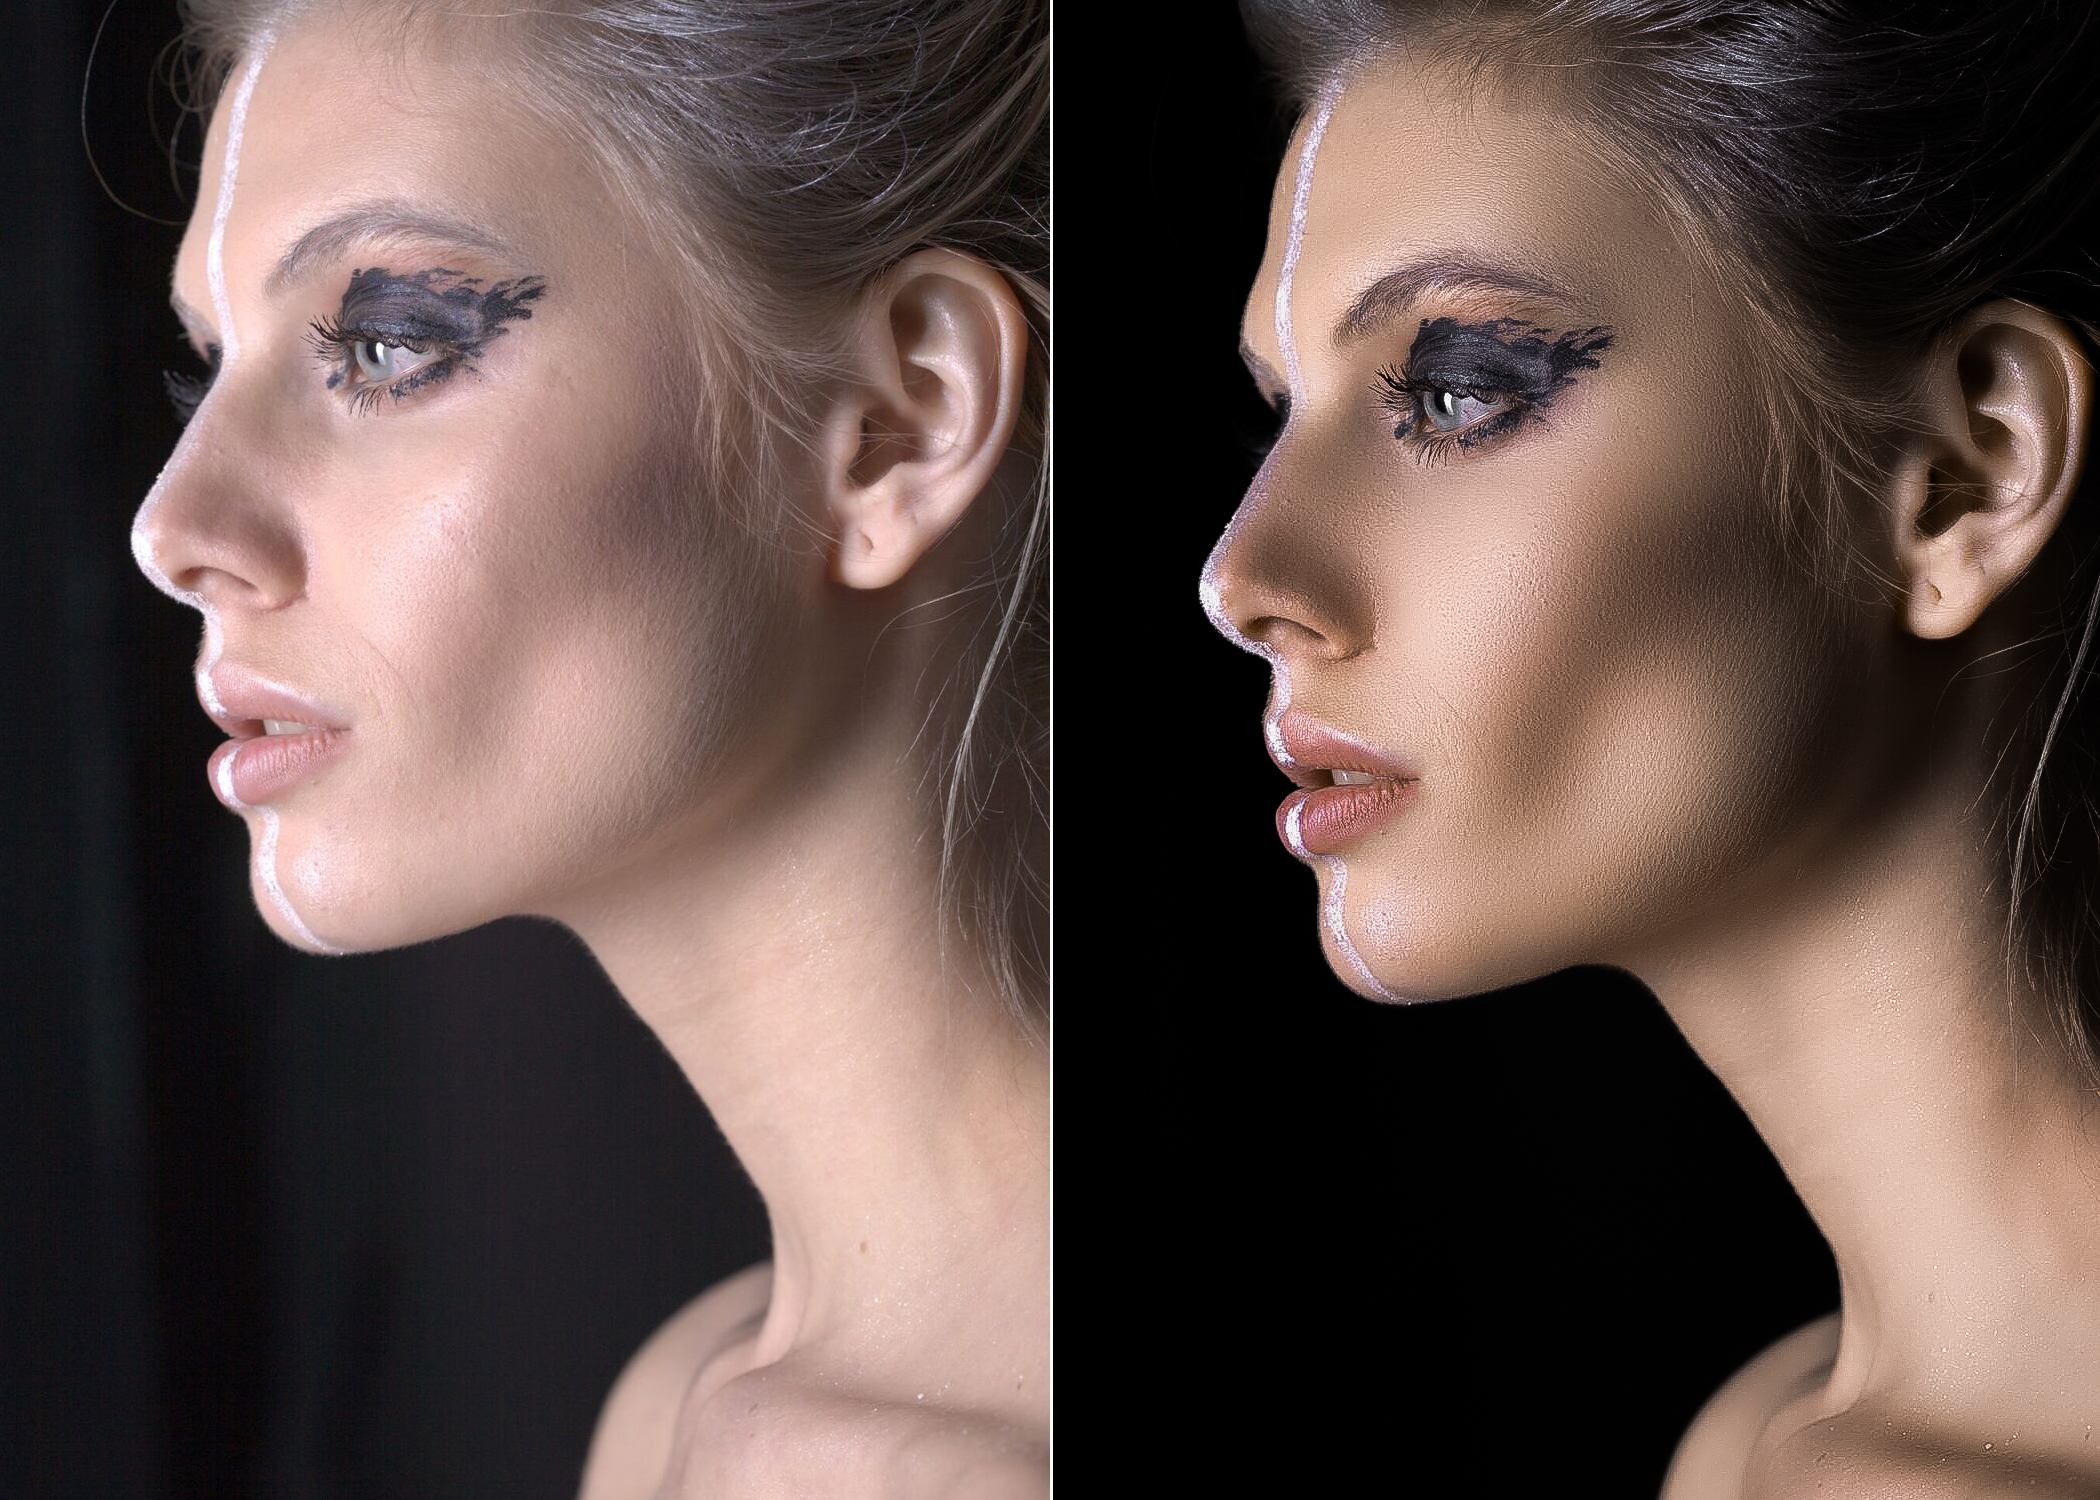 High Quality Professional Photo Retouching / Color Grading / Editing